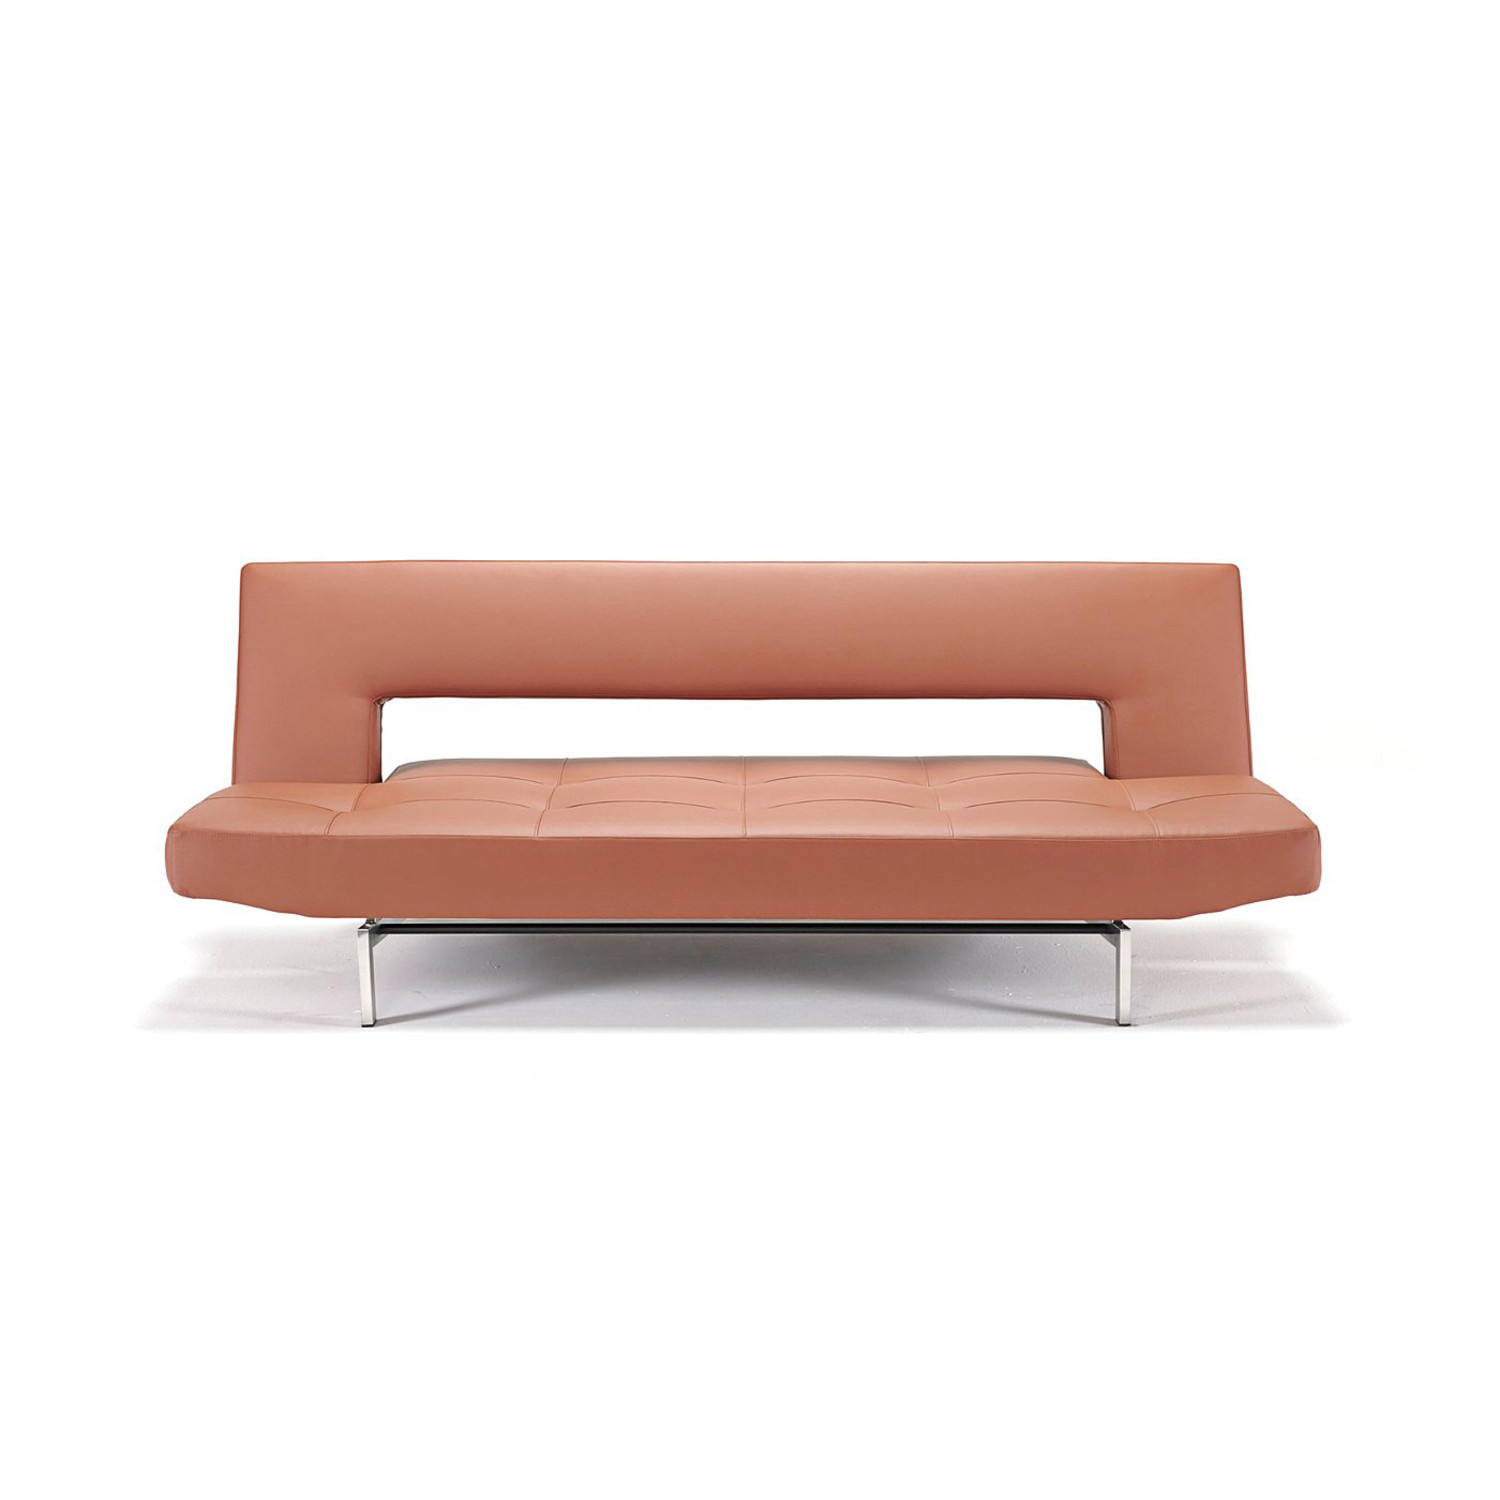 Wing Sofa by Per Weiss